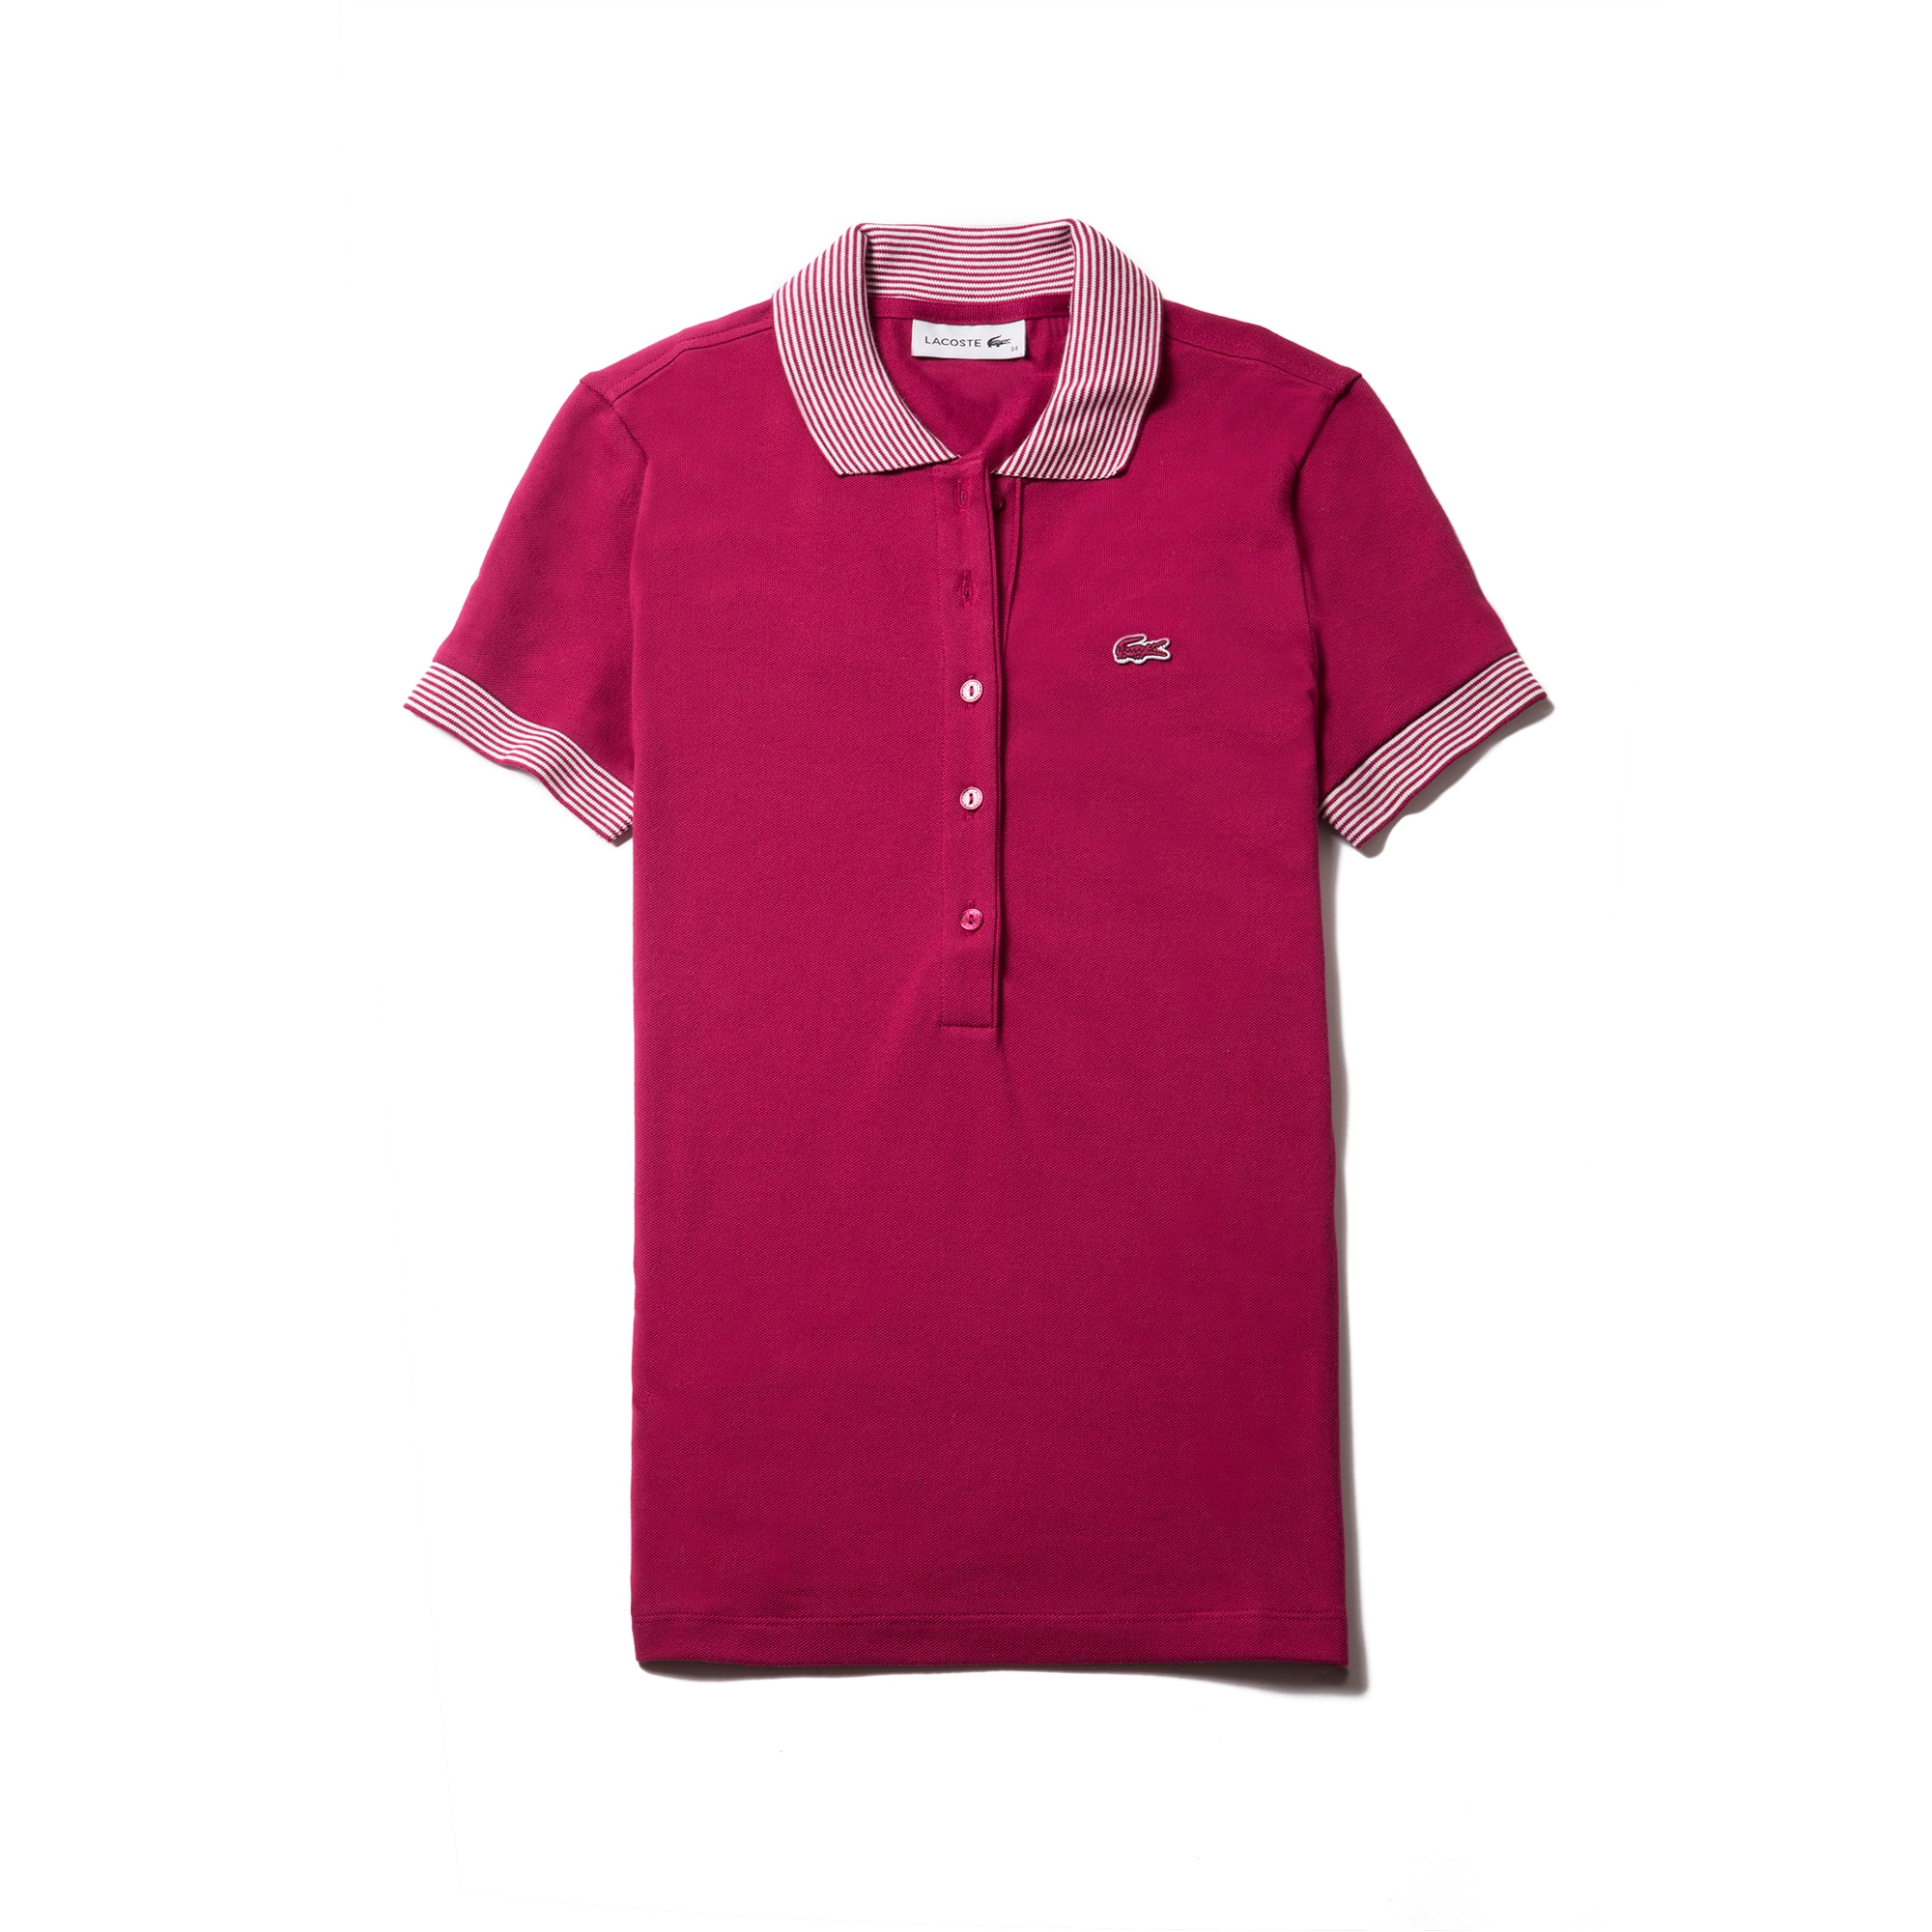 Women's  Slim Fit Contrast Accents Stretch Piqué Polo